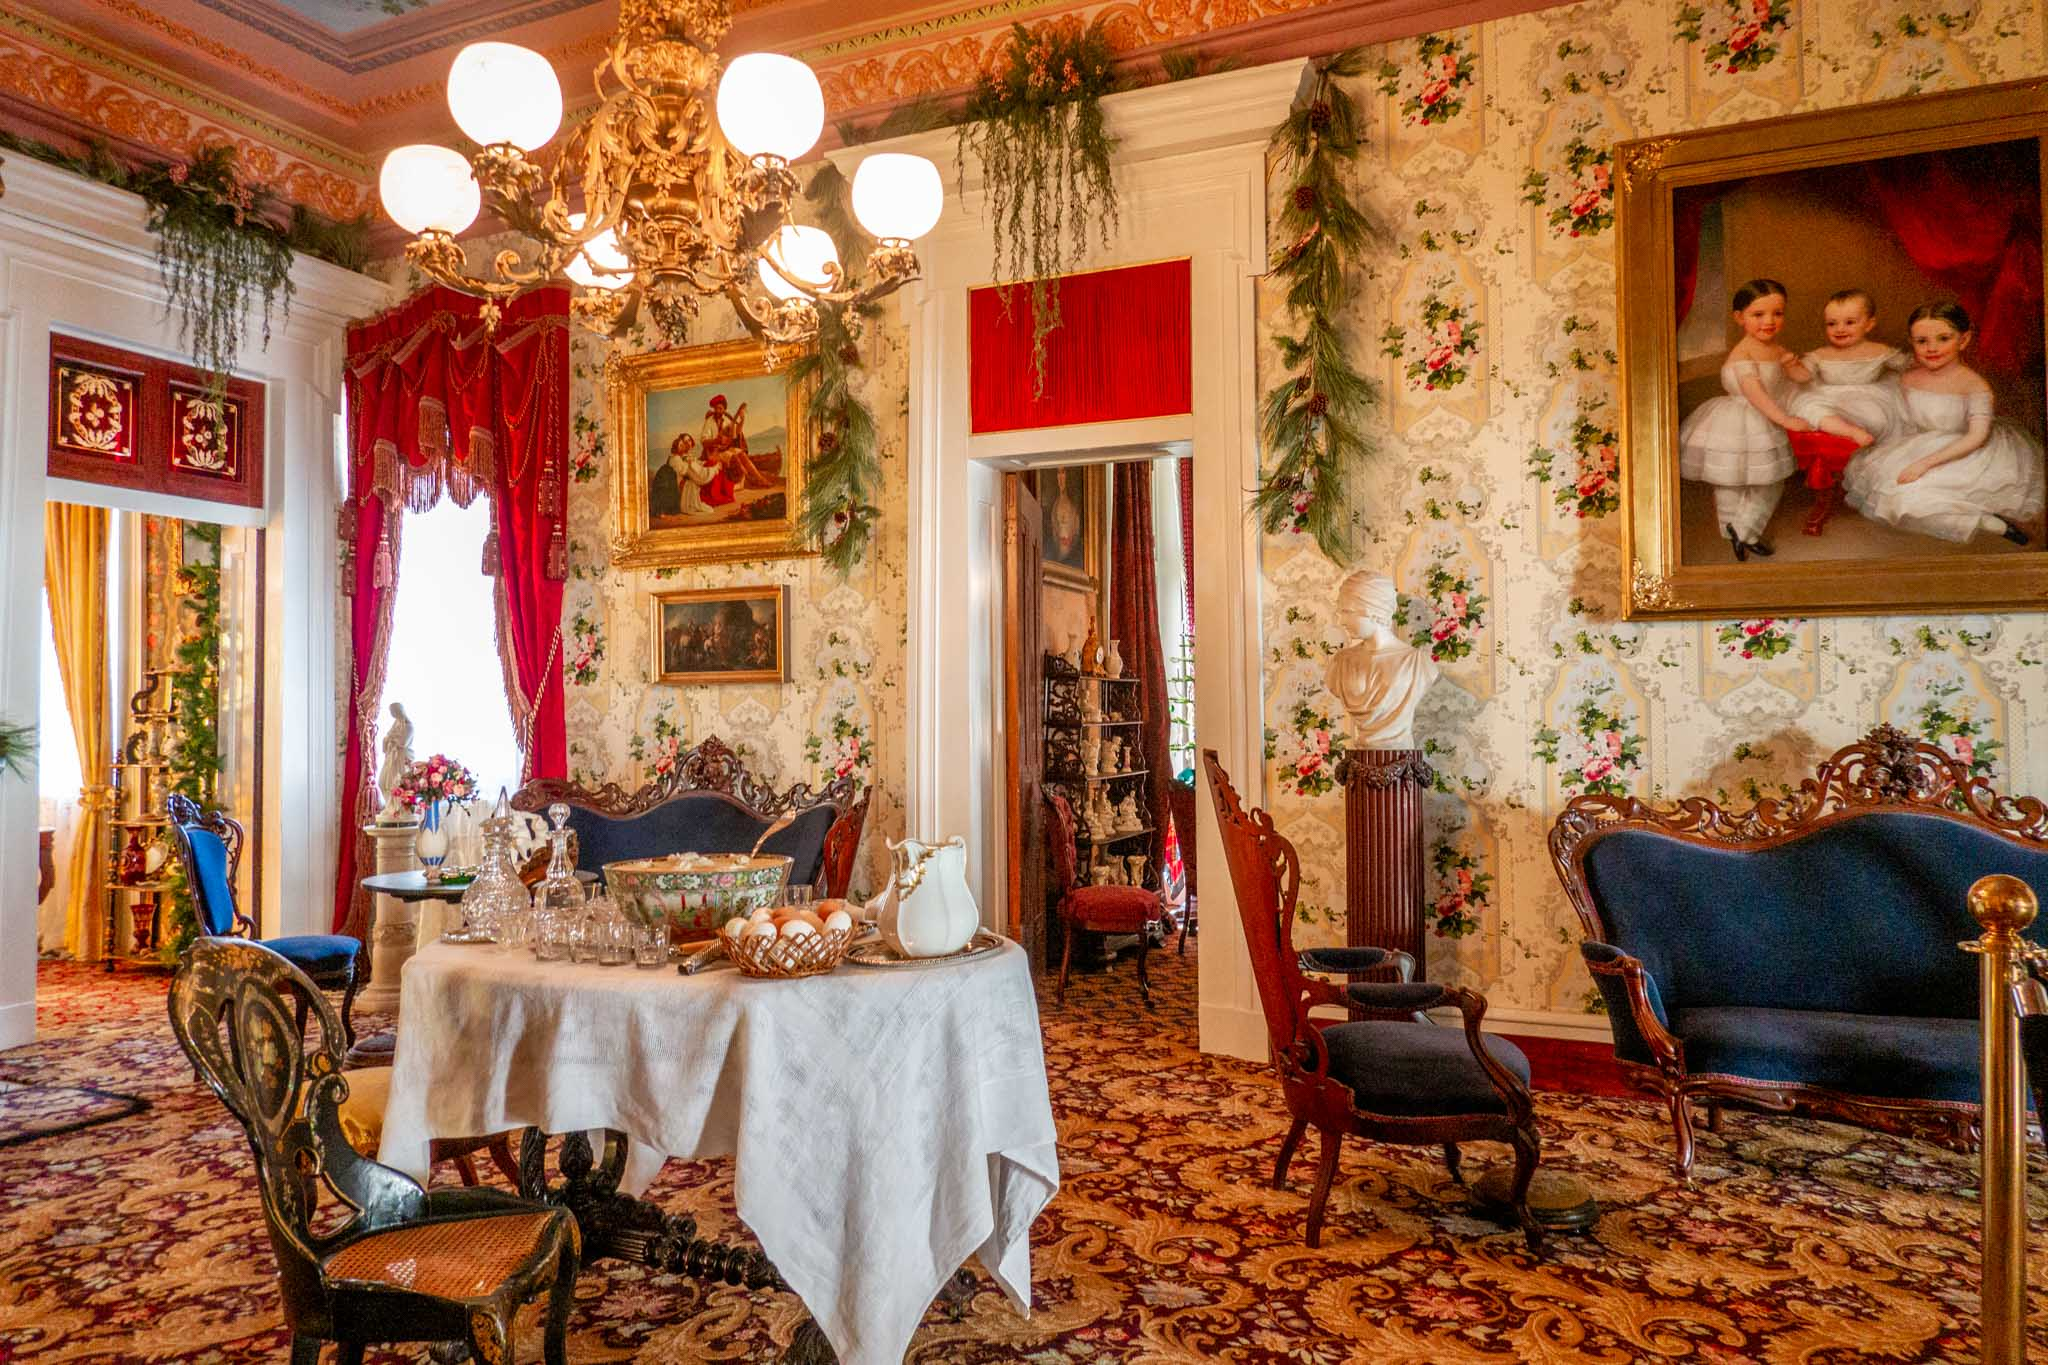 Room with table, chairs, a portrait, and decorations